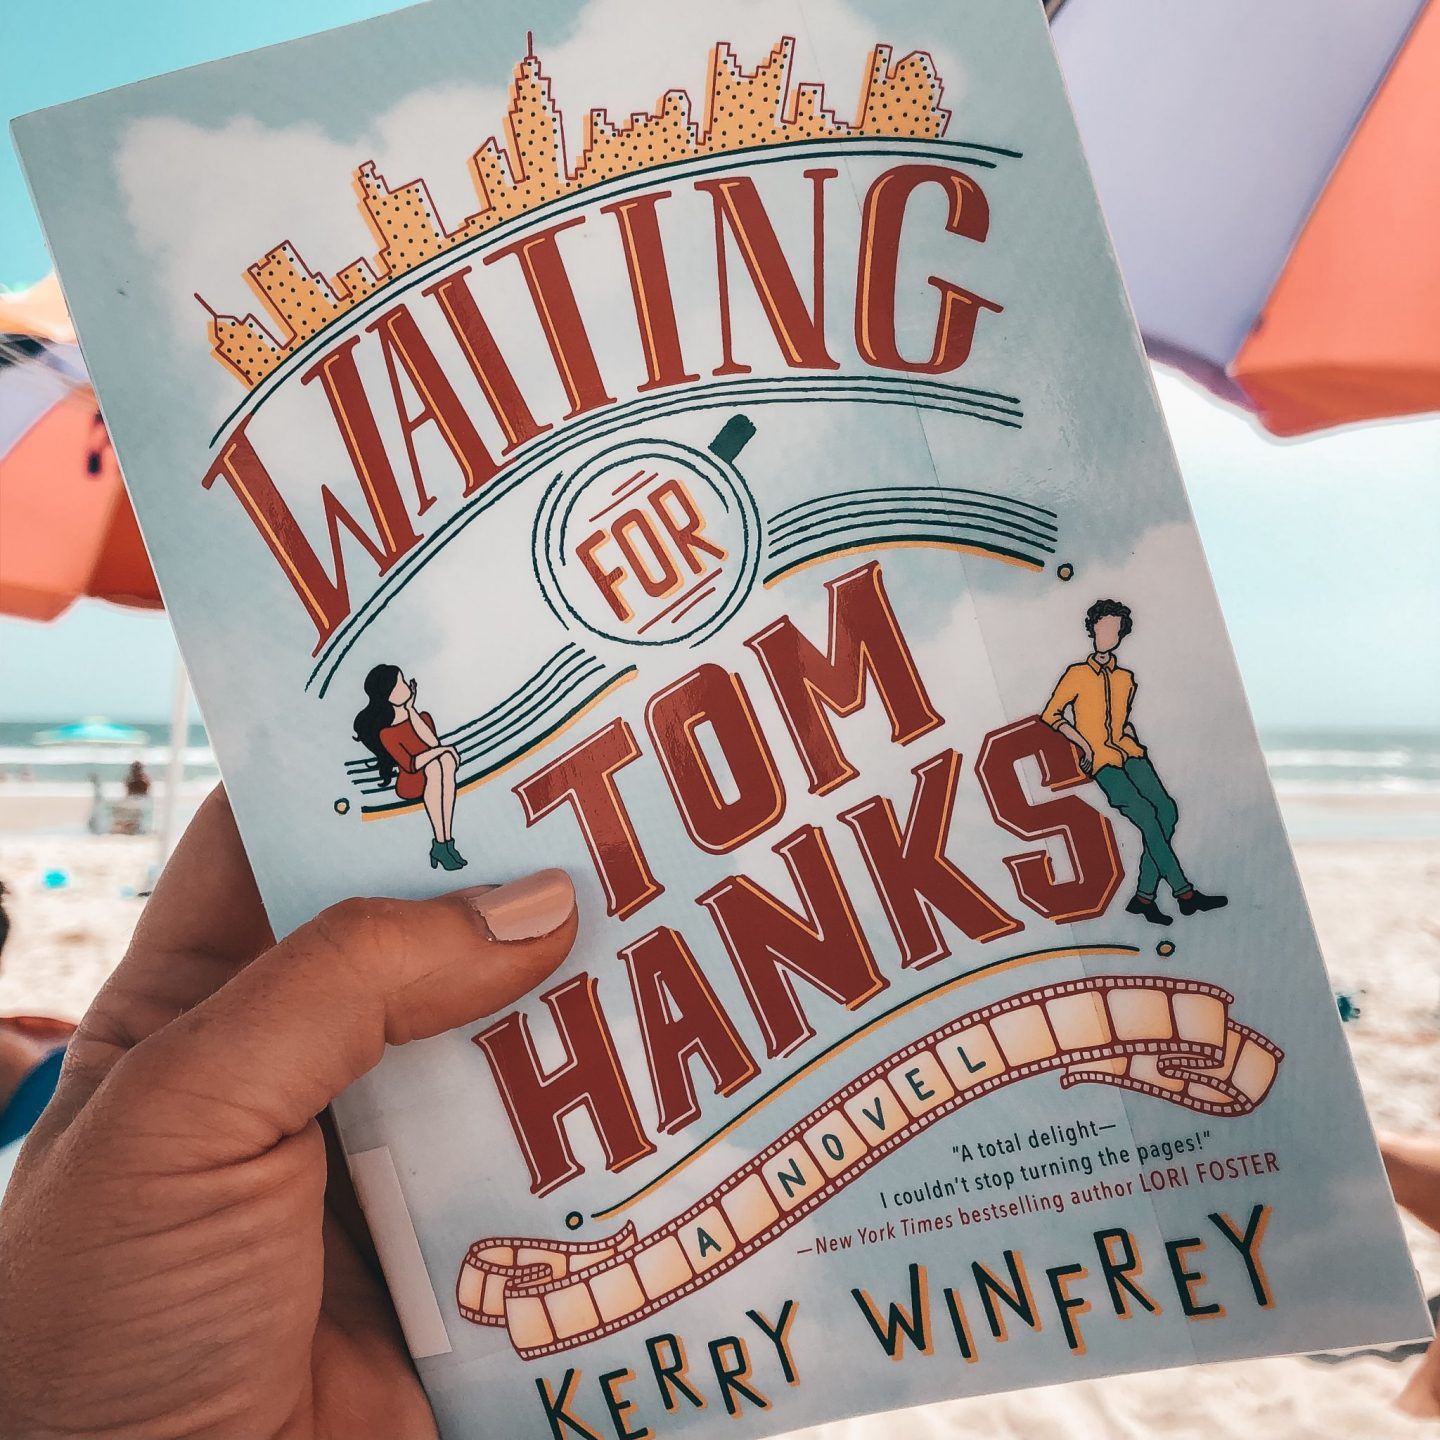 North Carolina blogger Rebecca Lately shares her review of Waiting for Tom Hanks by Kerry Winfrey. This is an fun, light summer read!